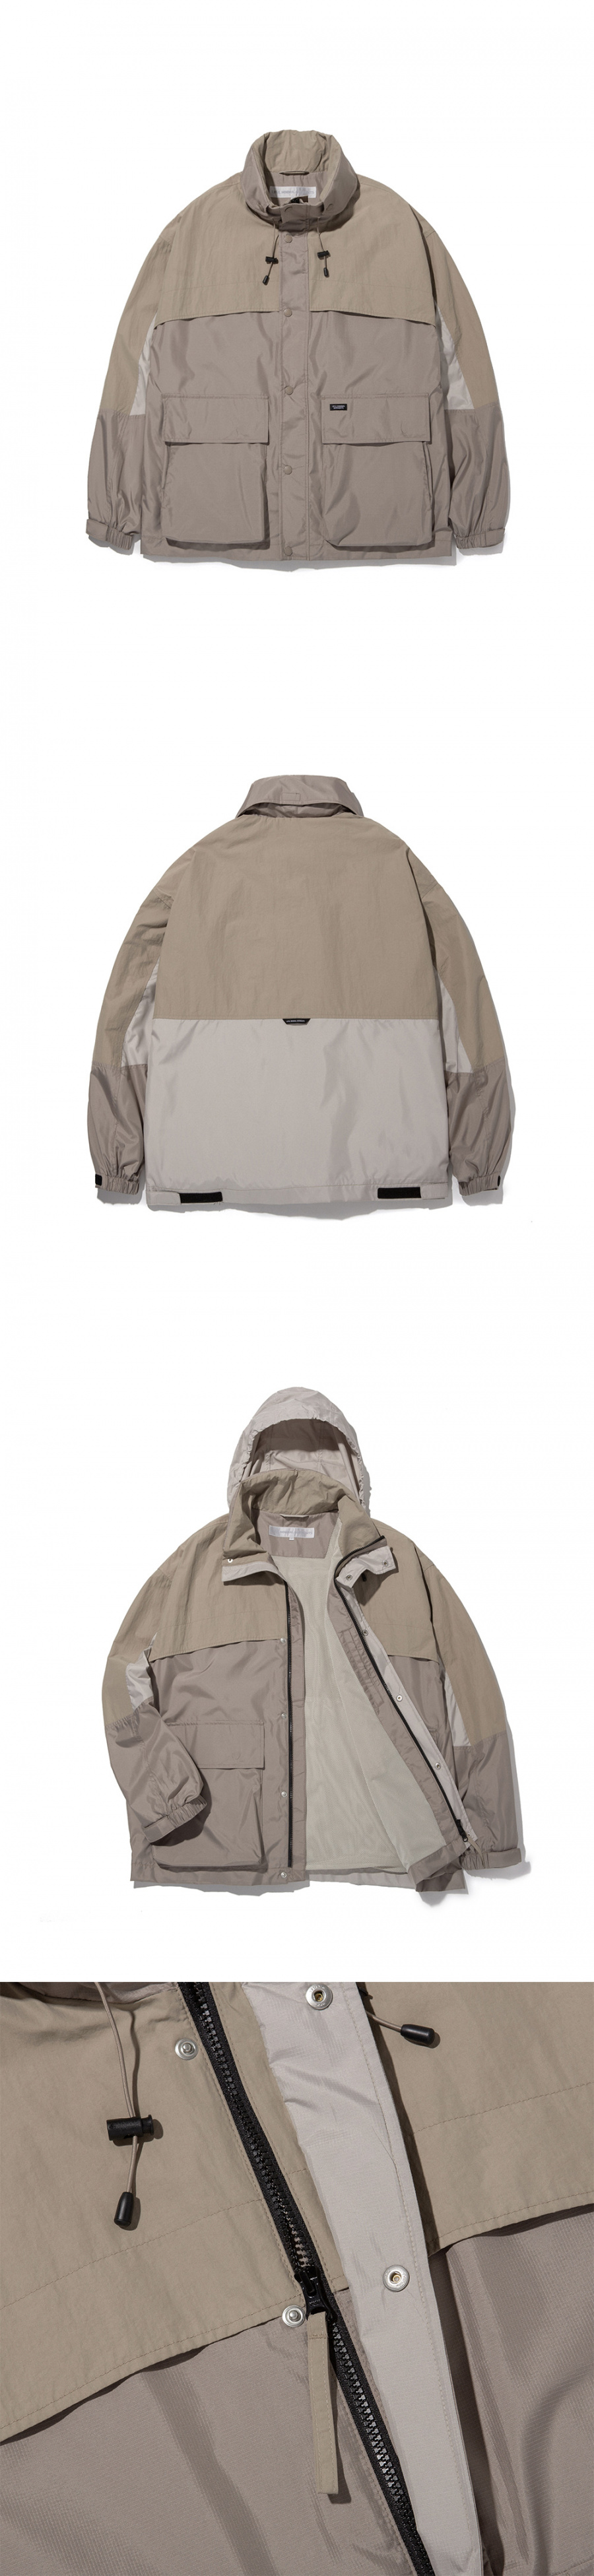 라이풀(LIFUL) COLOR BLOCK WINDBREAKER khaki beige